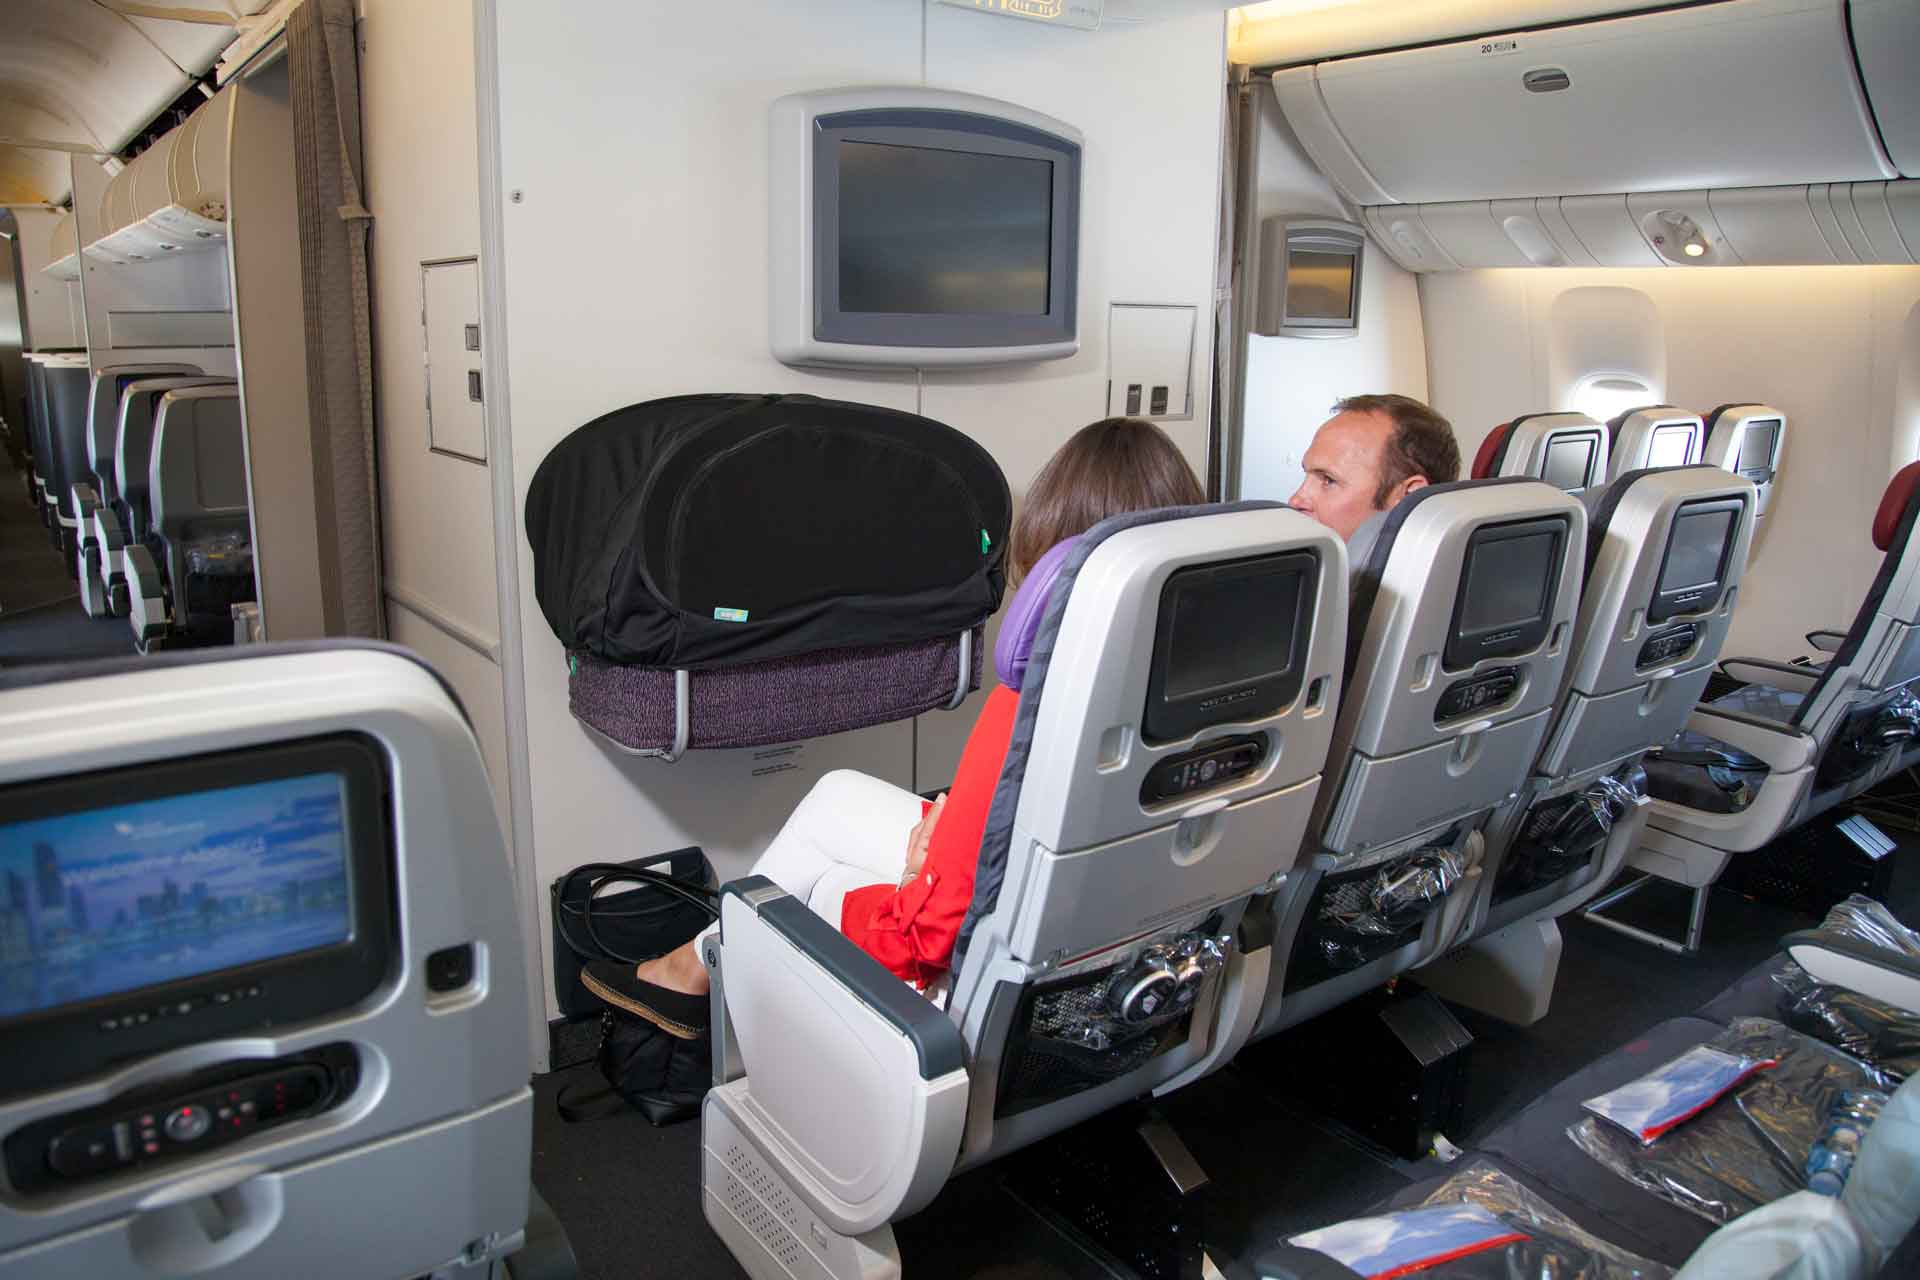 CoziGo in use over an airplane bassinet